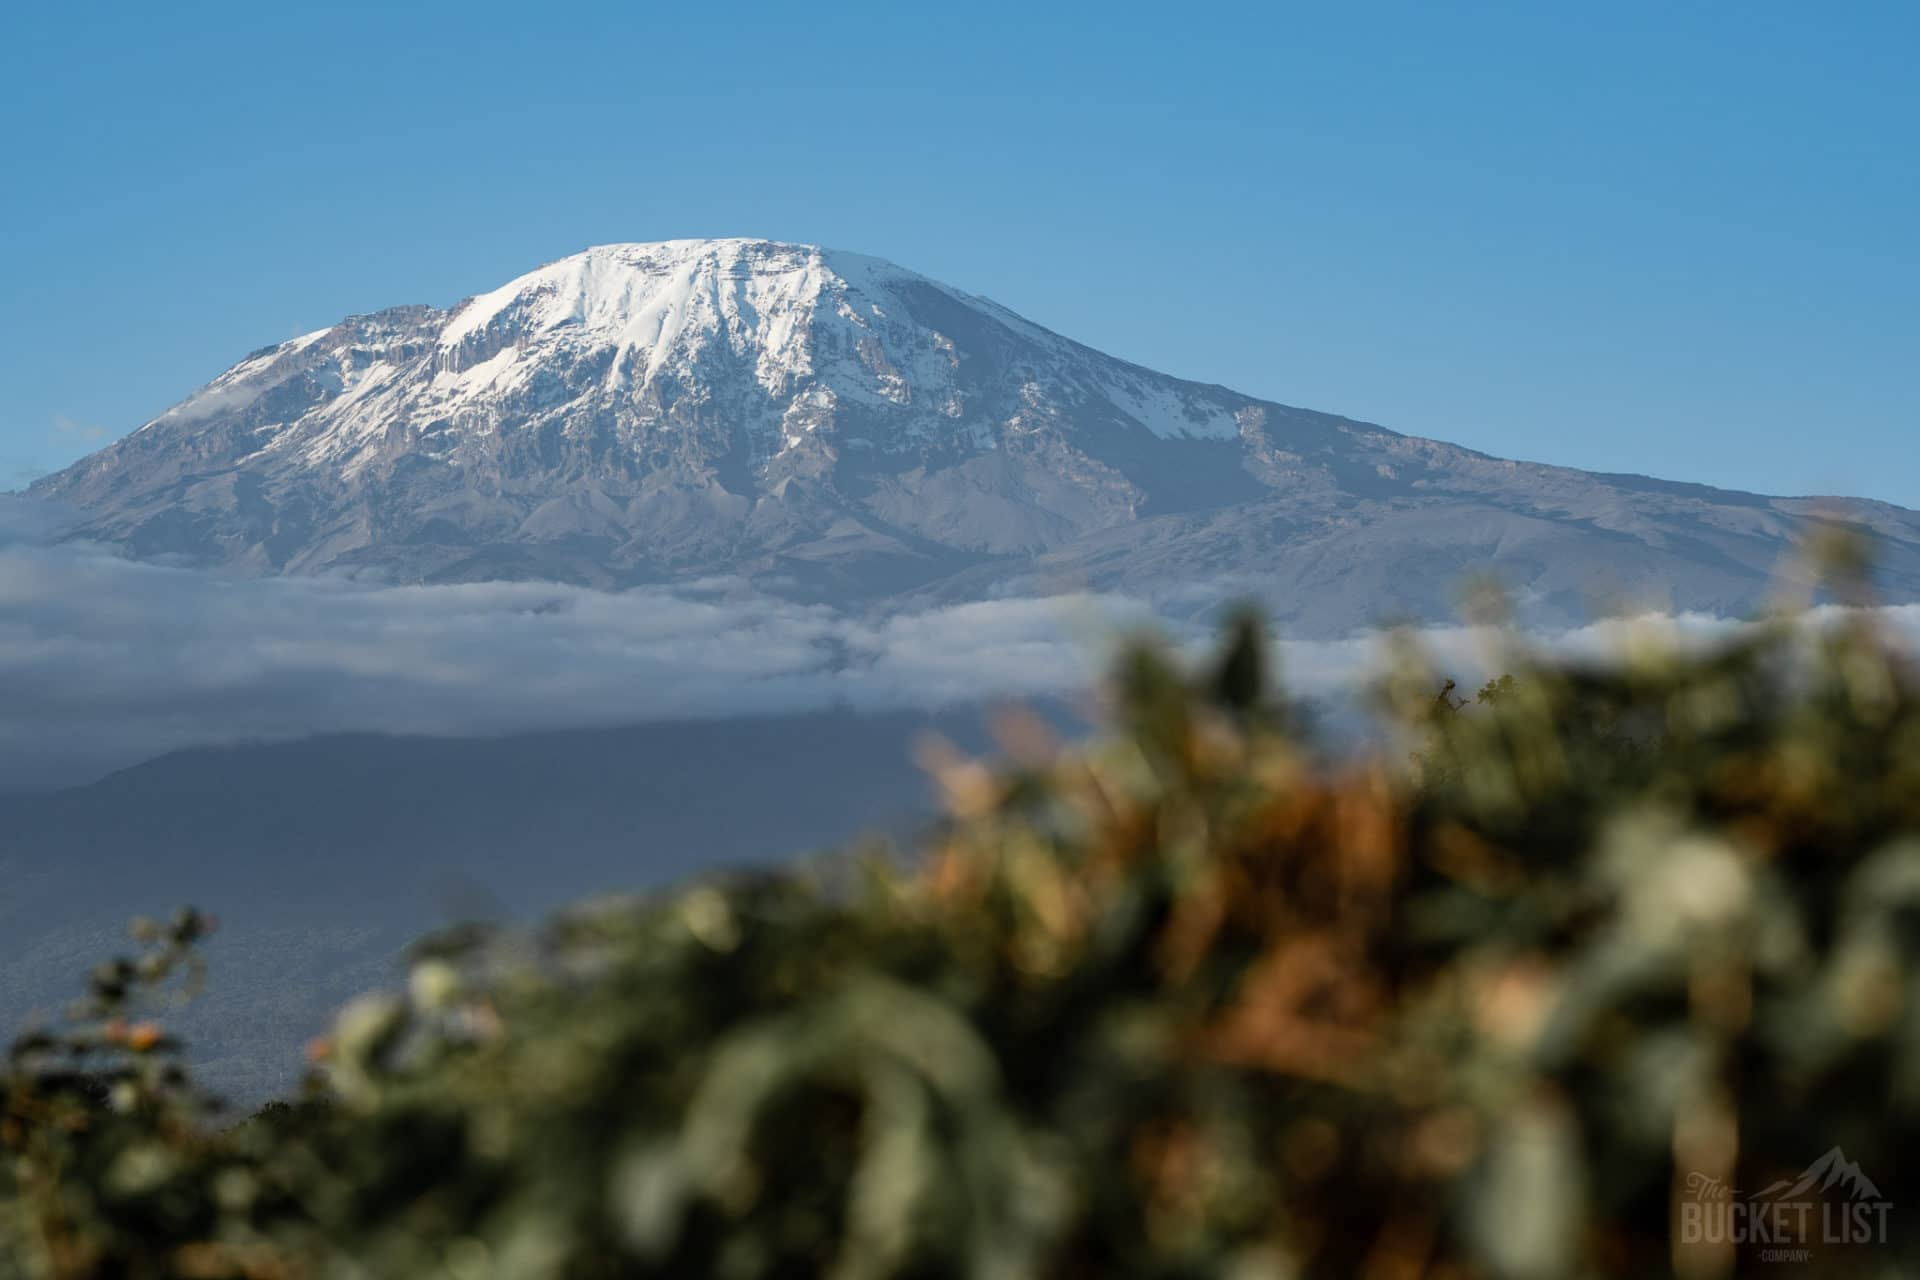 How Difficult is it to Climb Kilimanjaro?